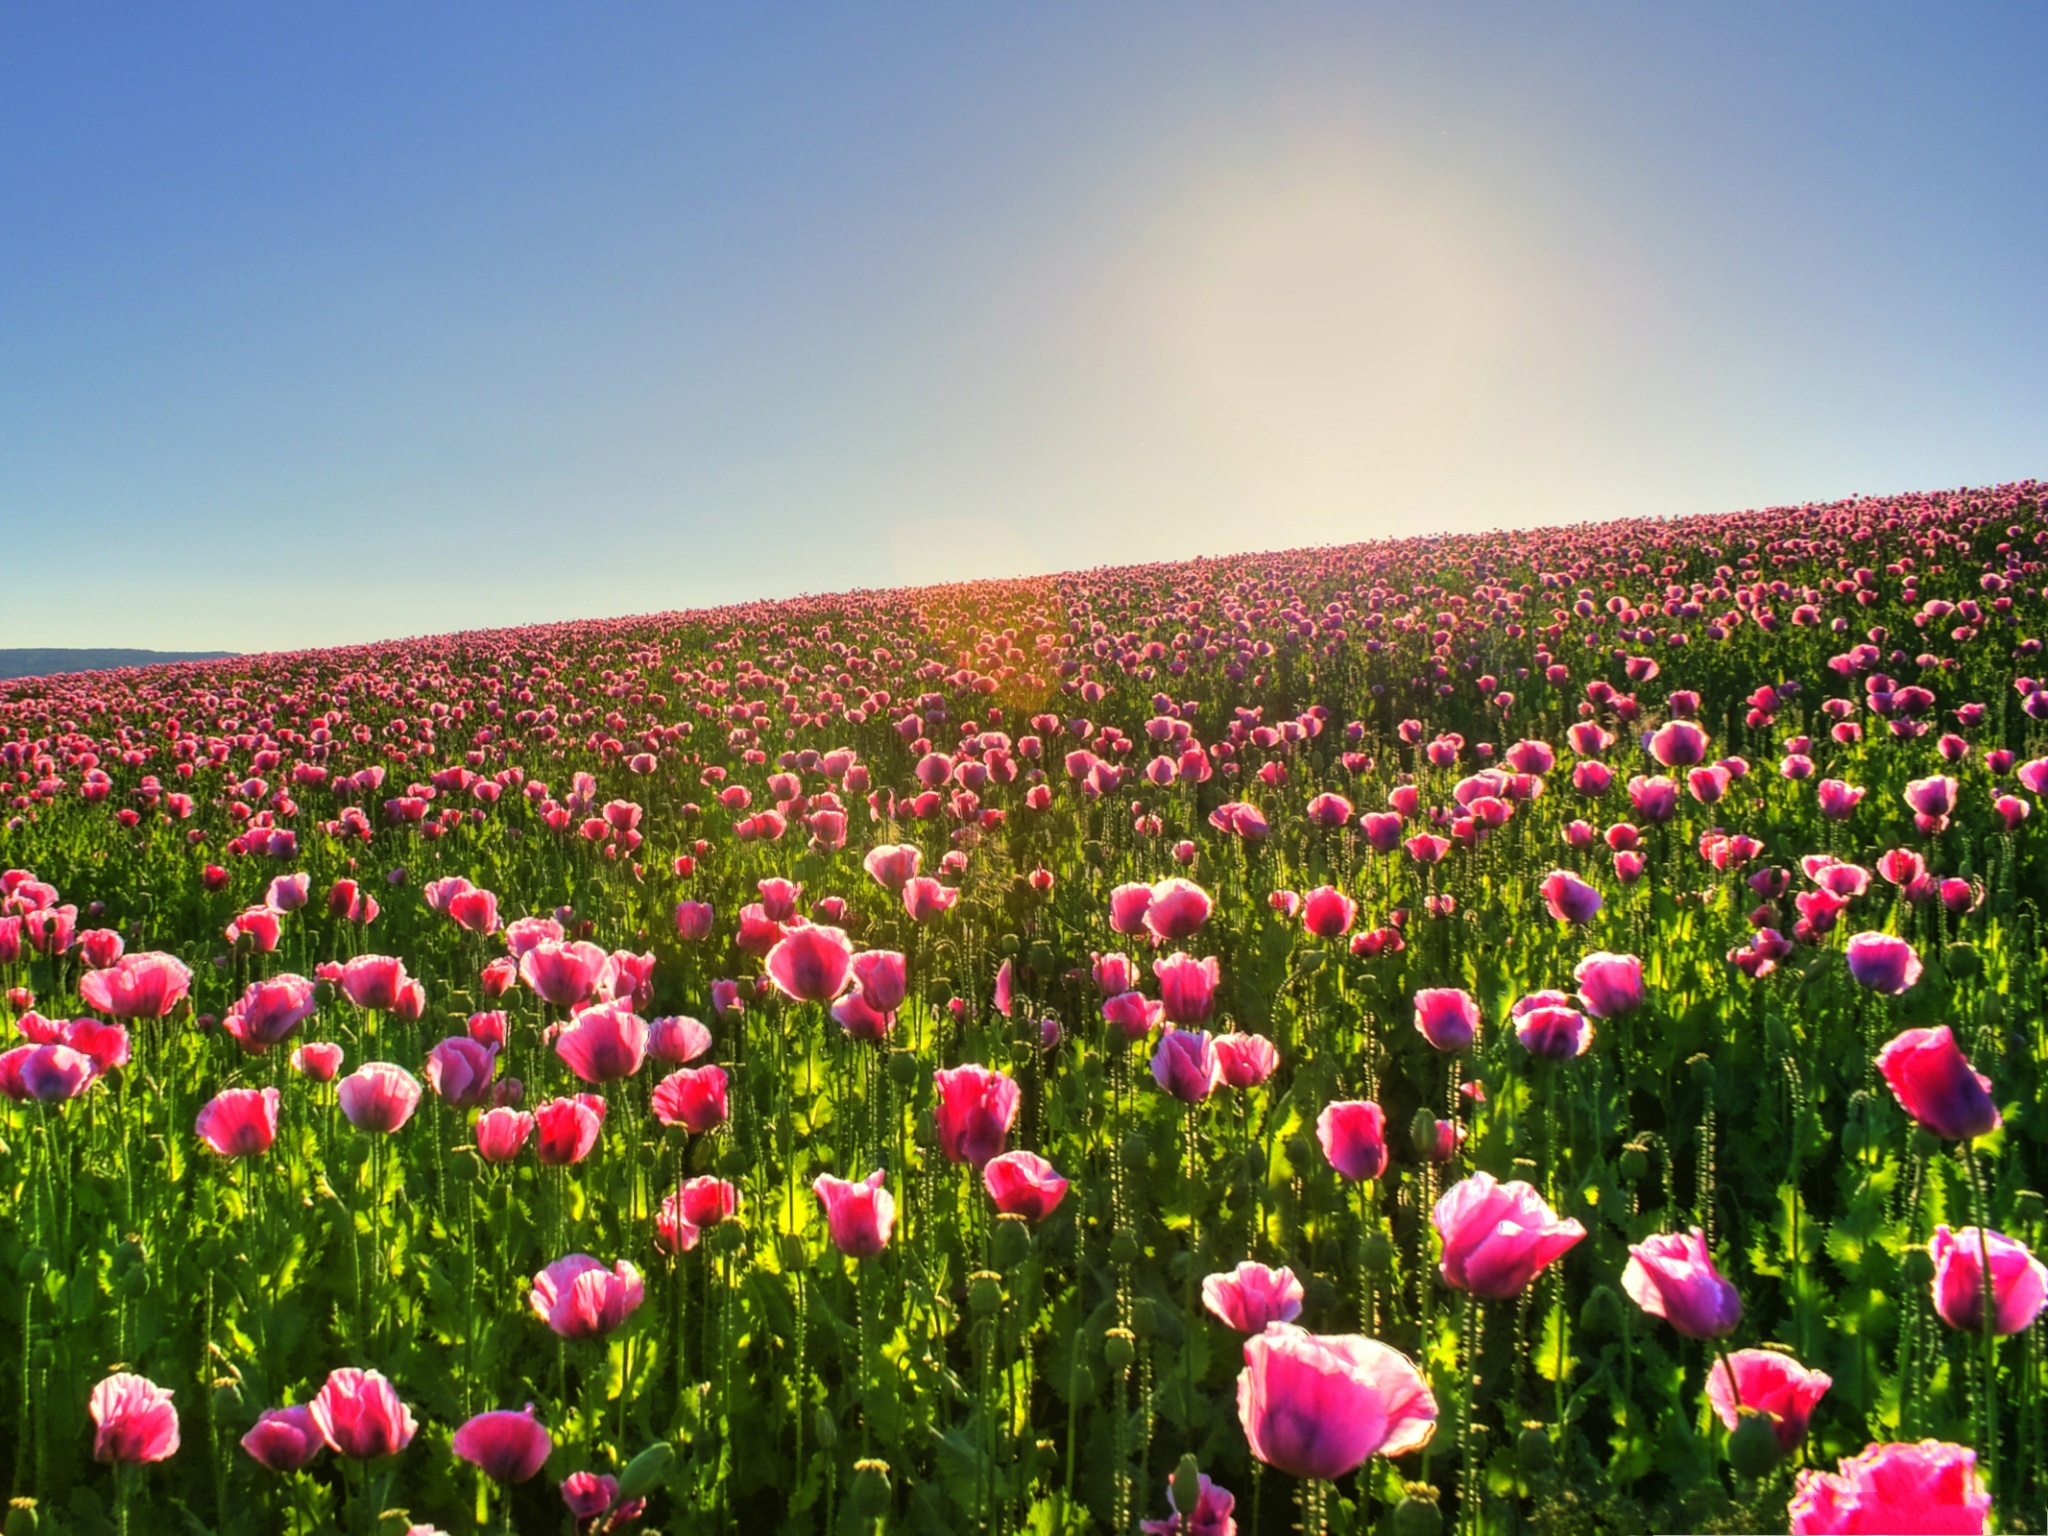 Beautiful flower field pink blooming flowers in prosperous growth click to free download the wallpaper beautiful flower field pink blooming flowers in izmirmasajfo